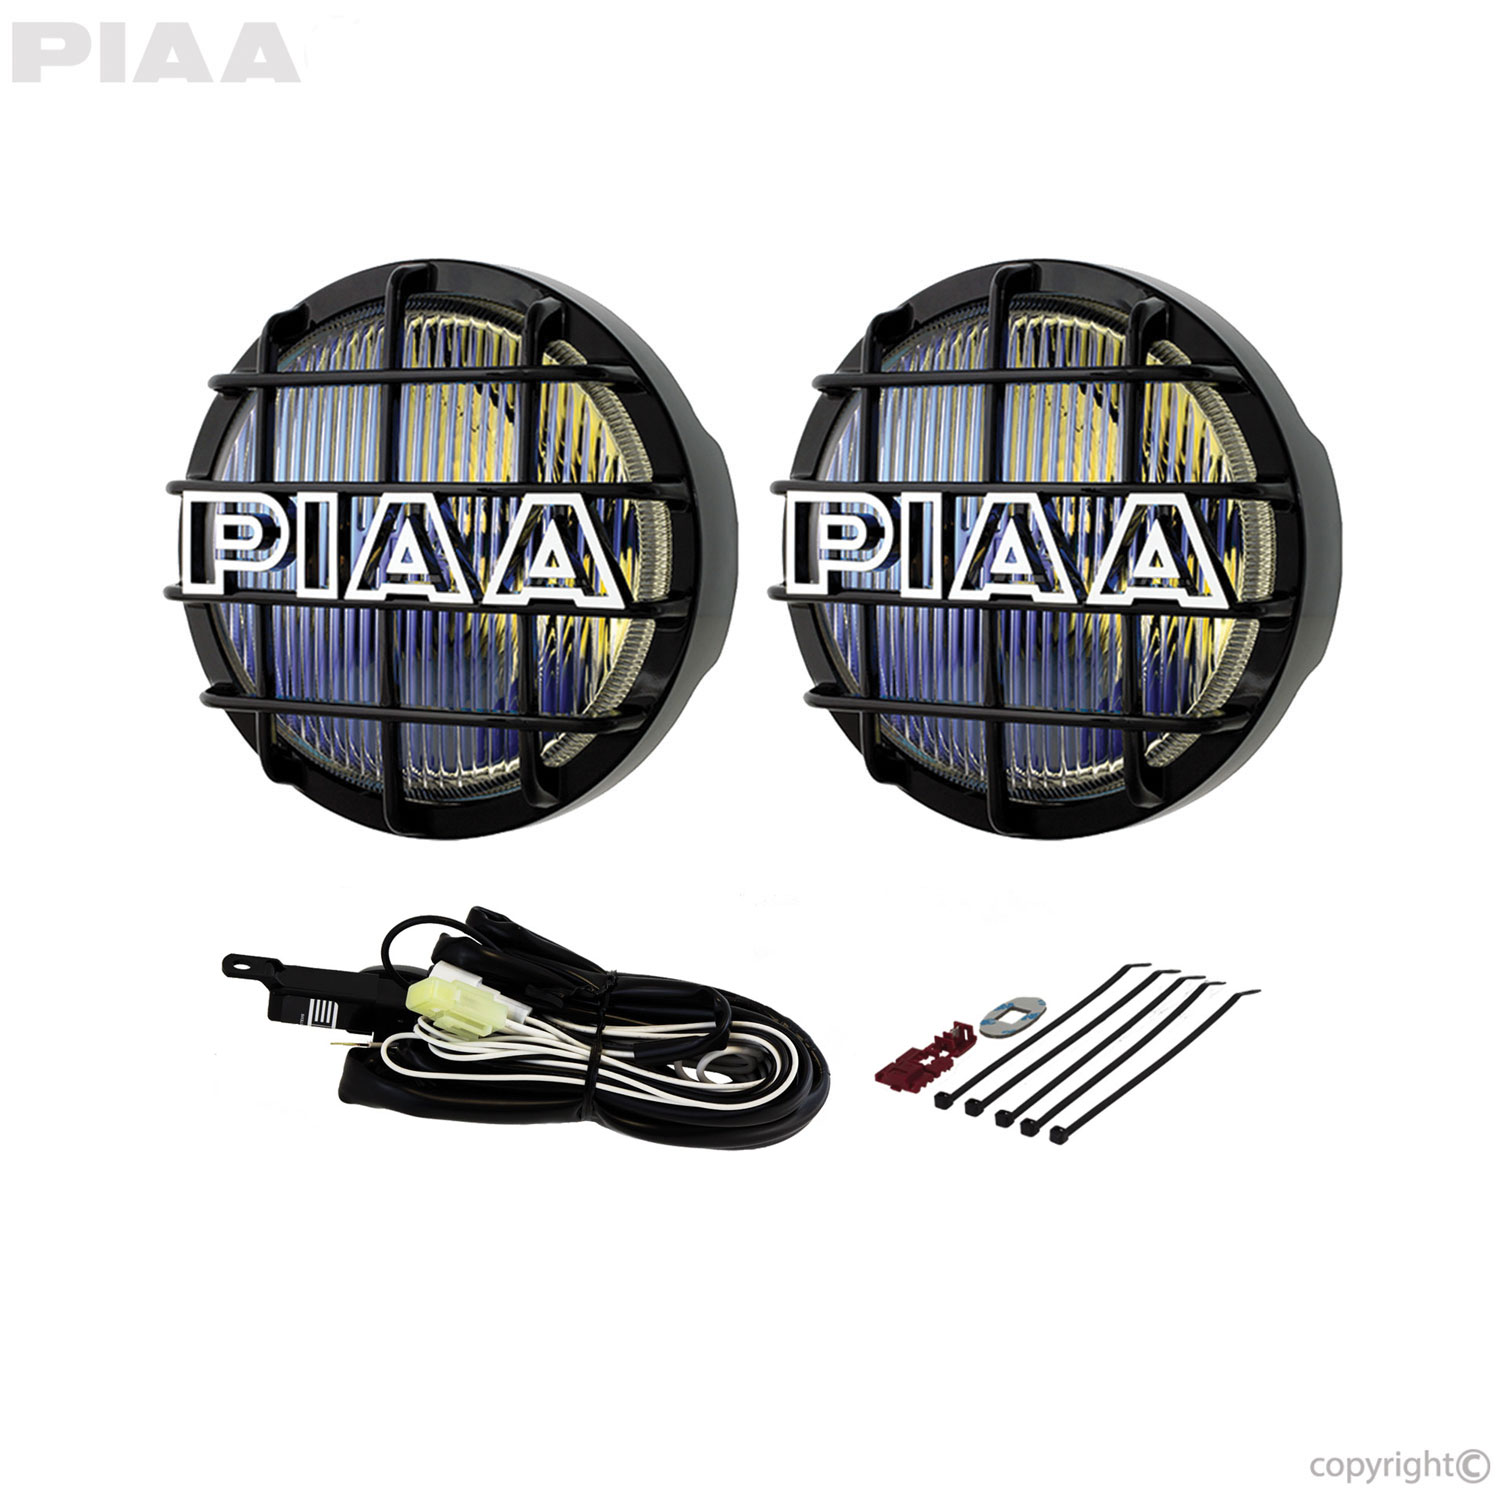 Piaa 520 Ion Yellow Fog Halogen Lamp Kit 05291 Light Wiring Diagram Also A Switch To Led Flood Lights